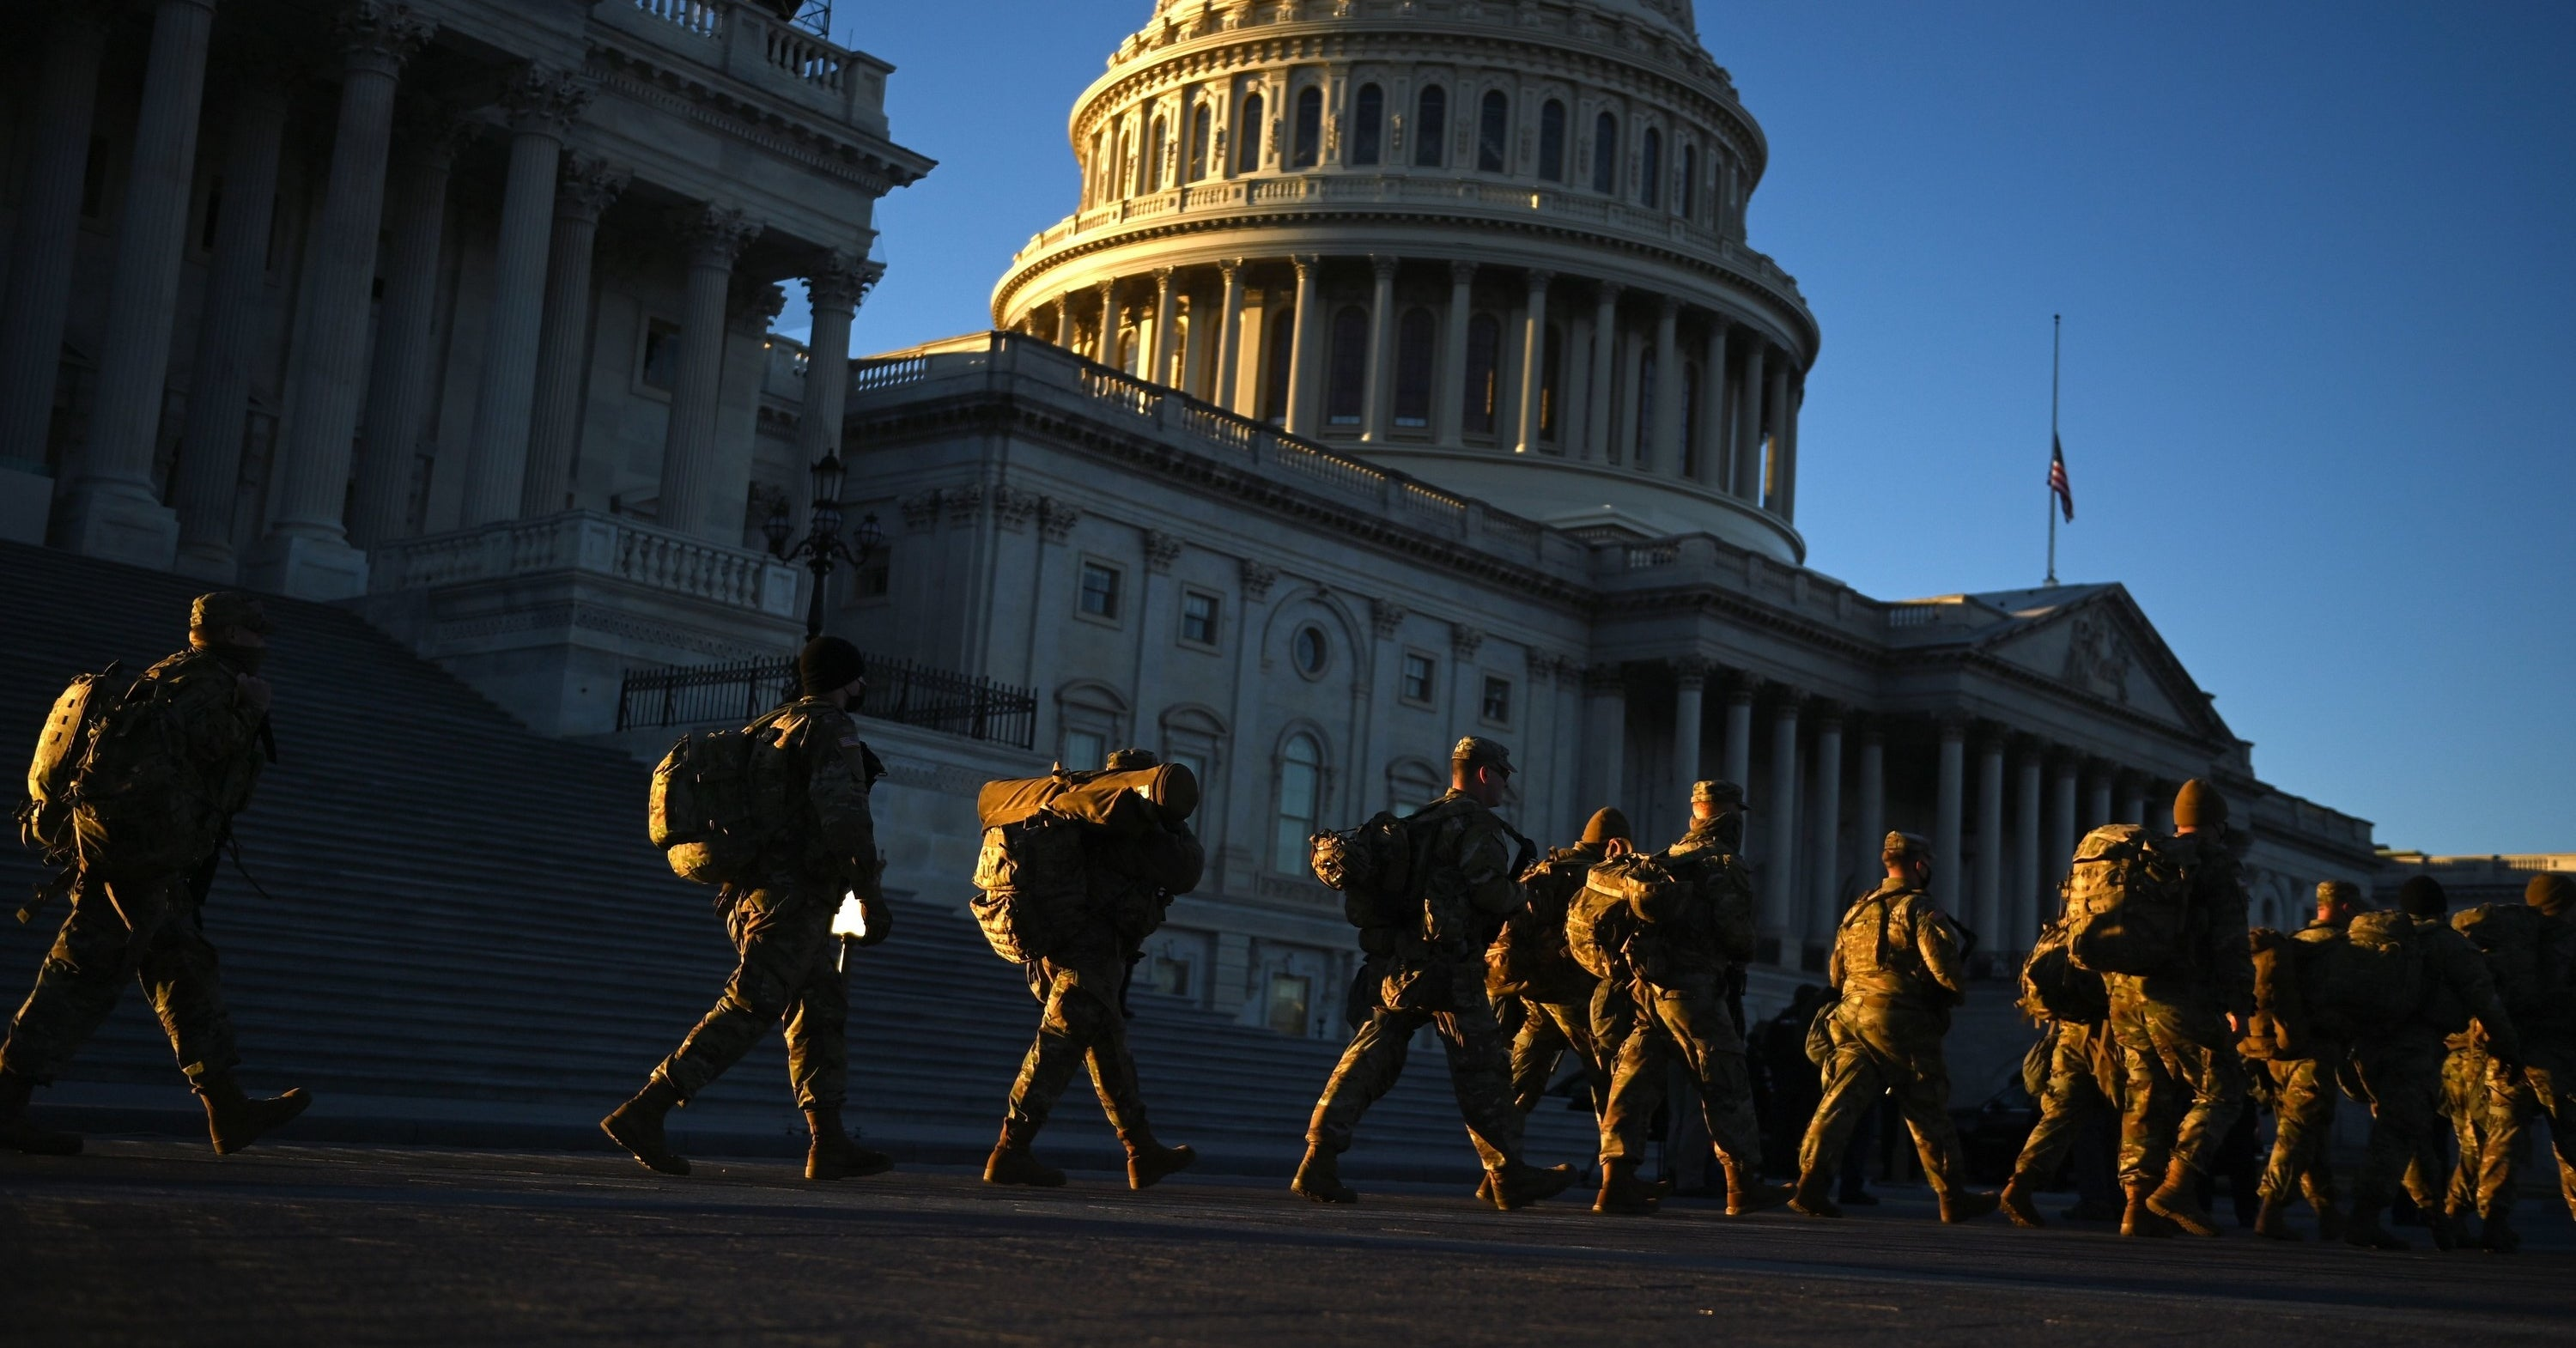 There Wasn't Enough Security To Prevent The Capitol Riot. Now, DC Is A Fortress.